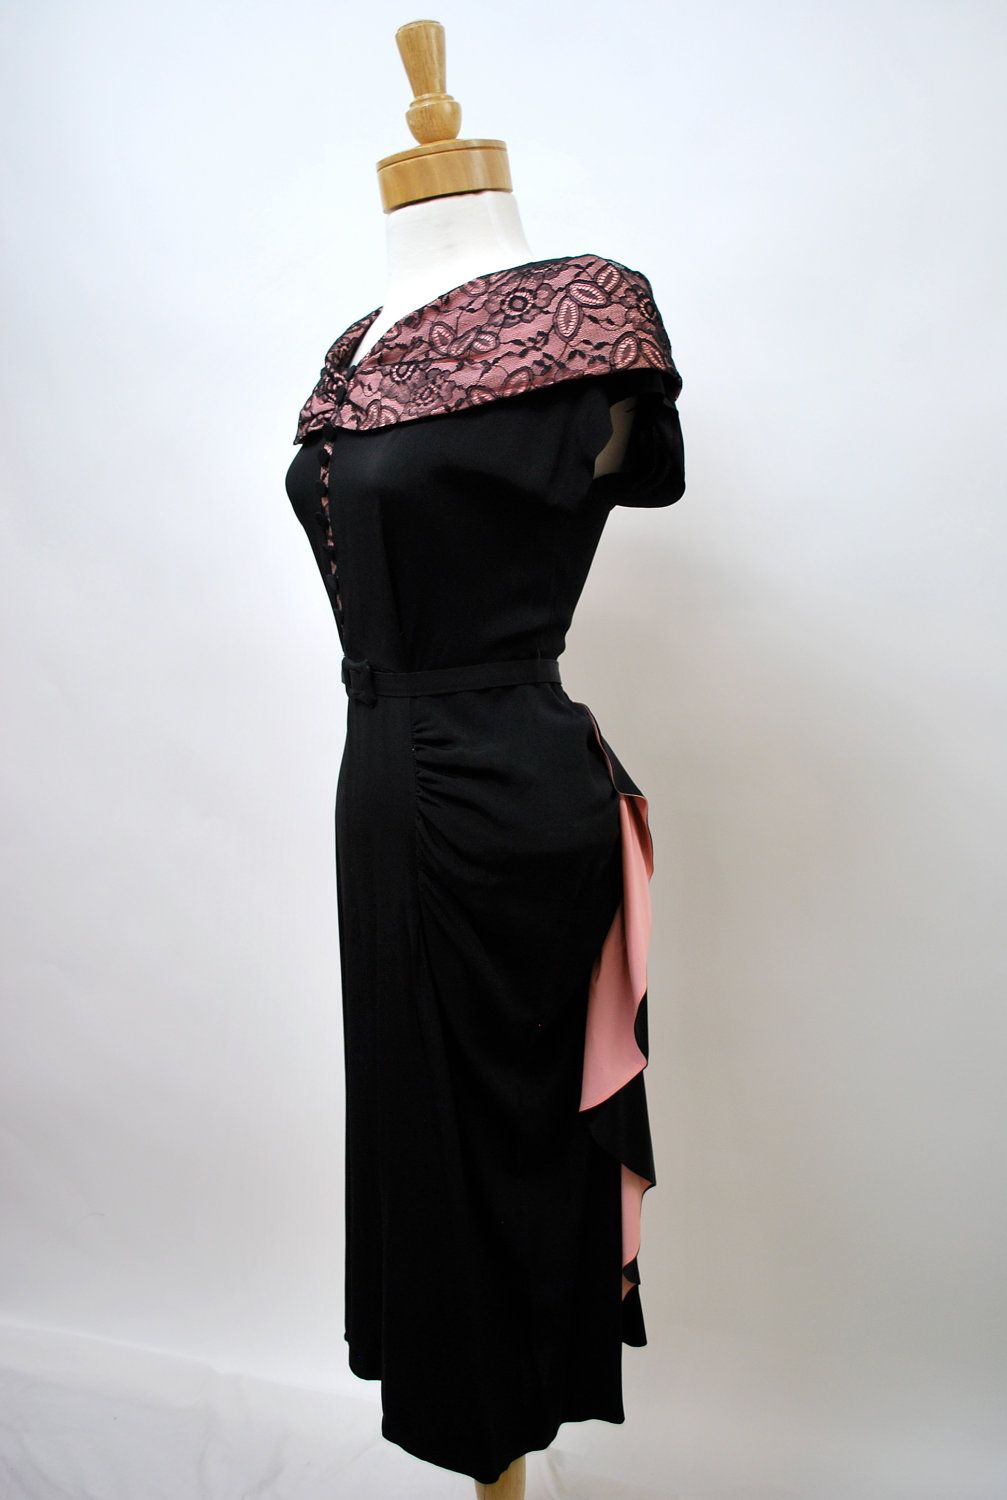 1940 S Black And Pink Party Dress I Love The Pink Lining Of The Bow Bustle Whatever In Back Black And Pink Dress 1940s Fashion Vintage Clothes 1940s [ 1500 x 1007 Pixel ]